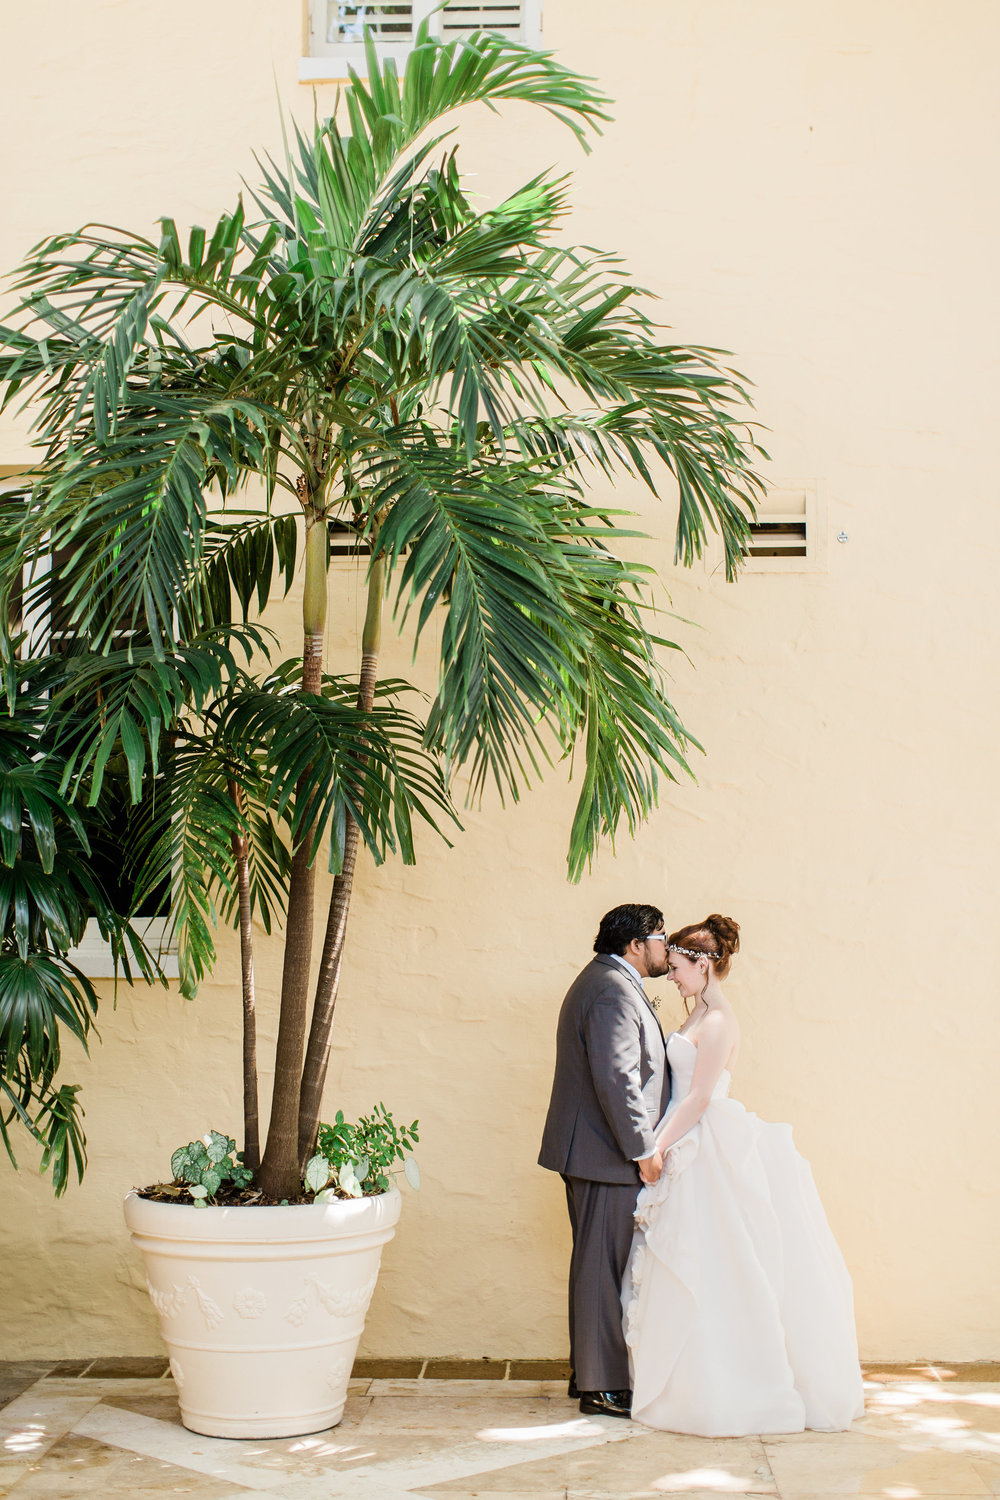 Wedding Portrait at The Addison Boca Raton Wedding Planning by Fleeting Elegance